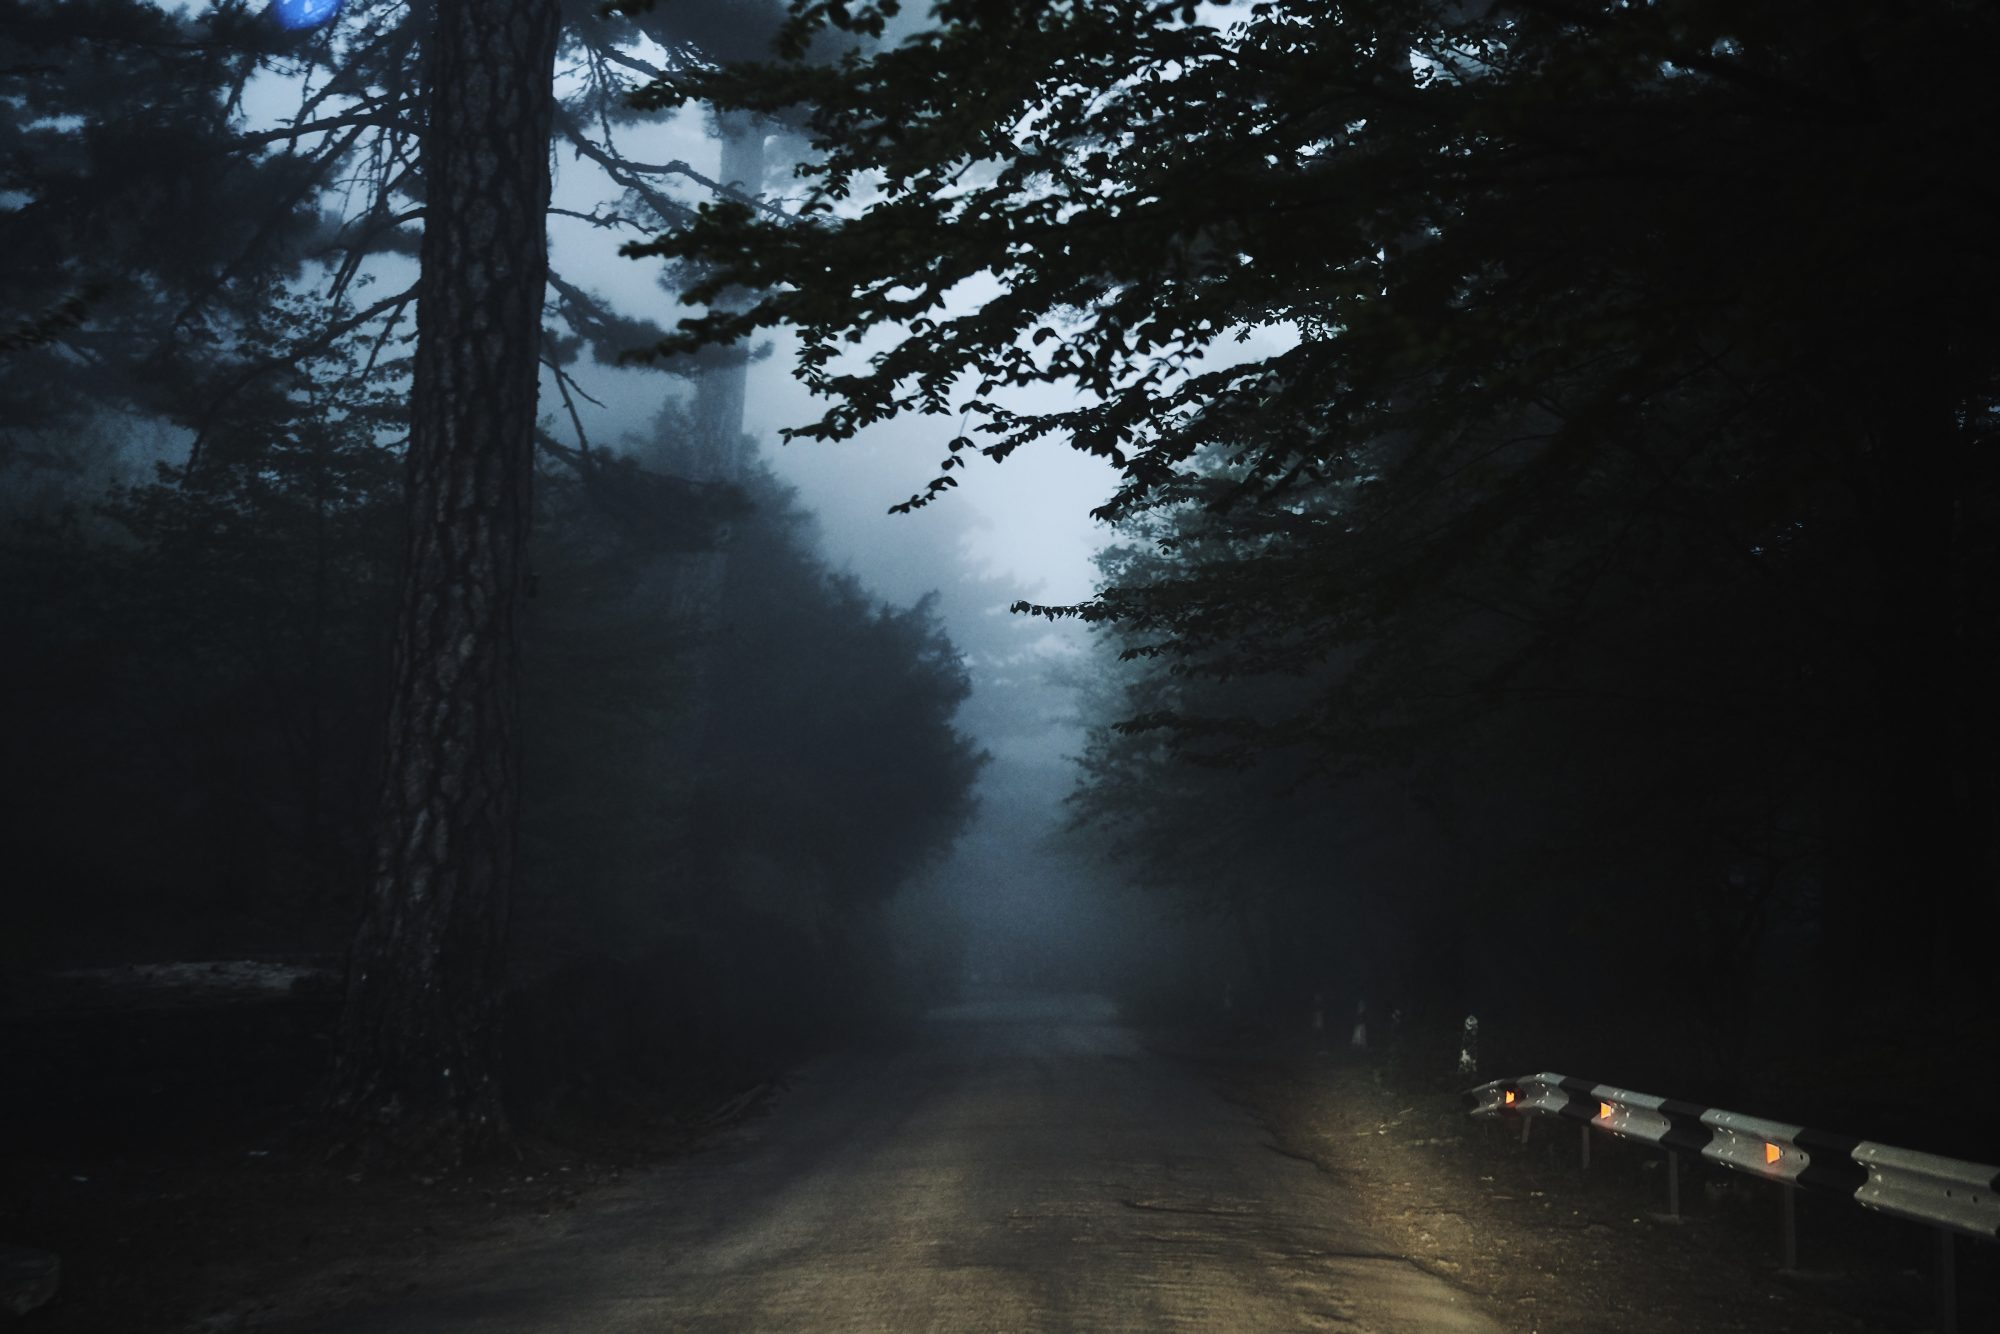 Scary Road in forest